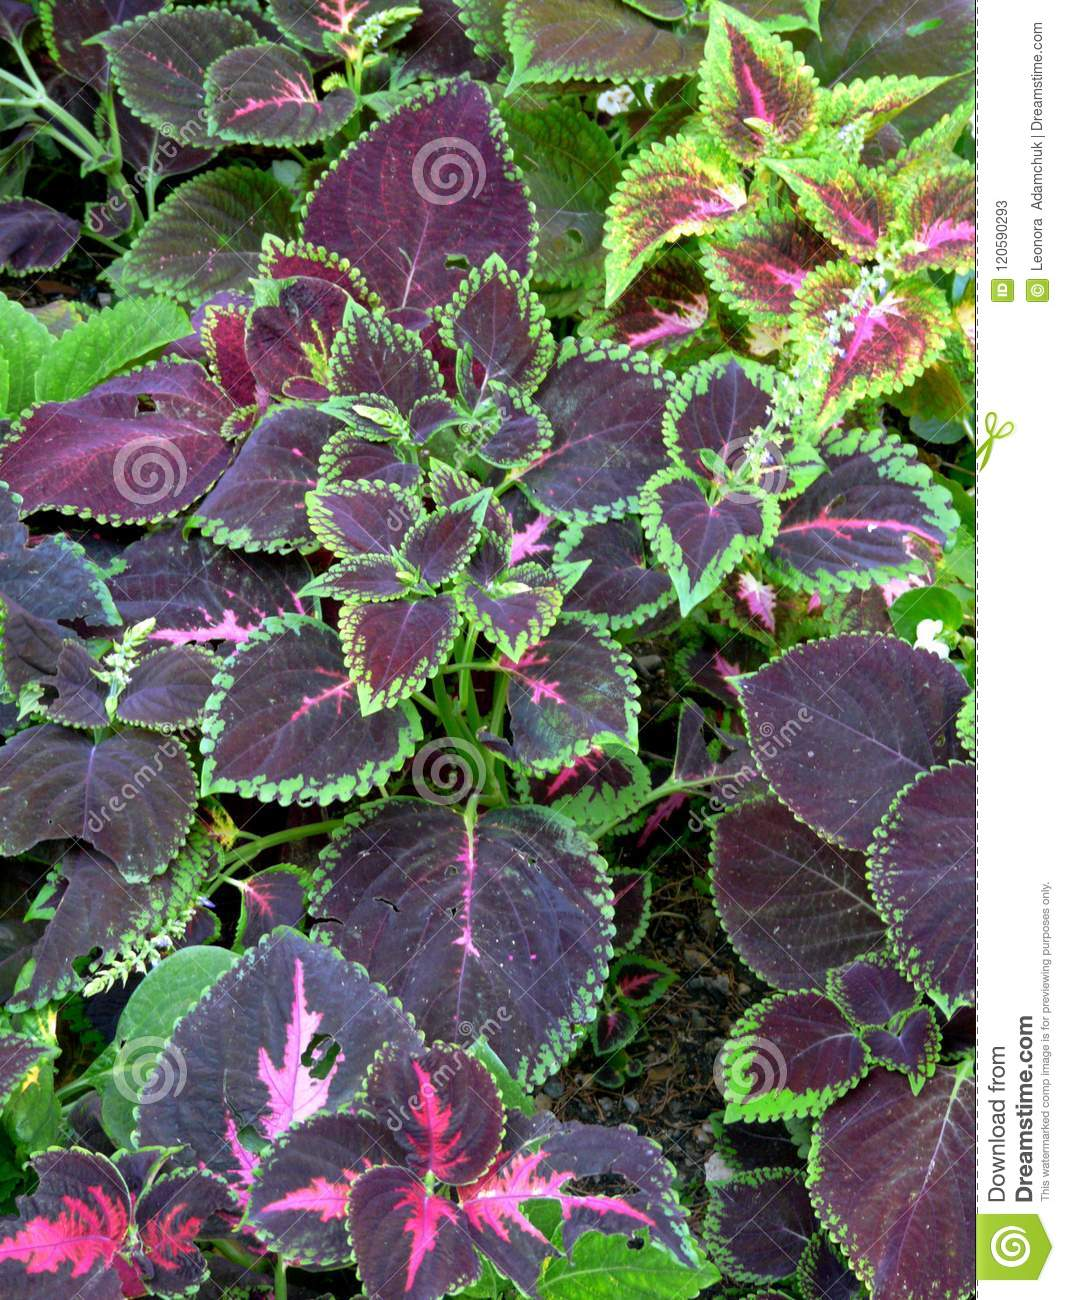 An Unusual Decorative Plant With Purple Leaves And Green